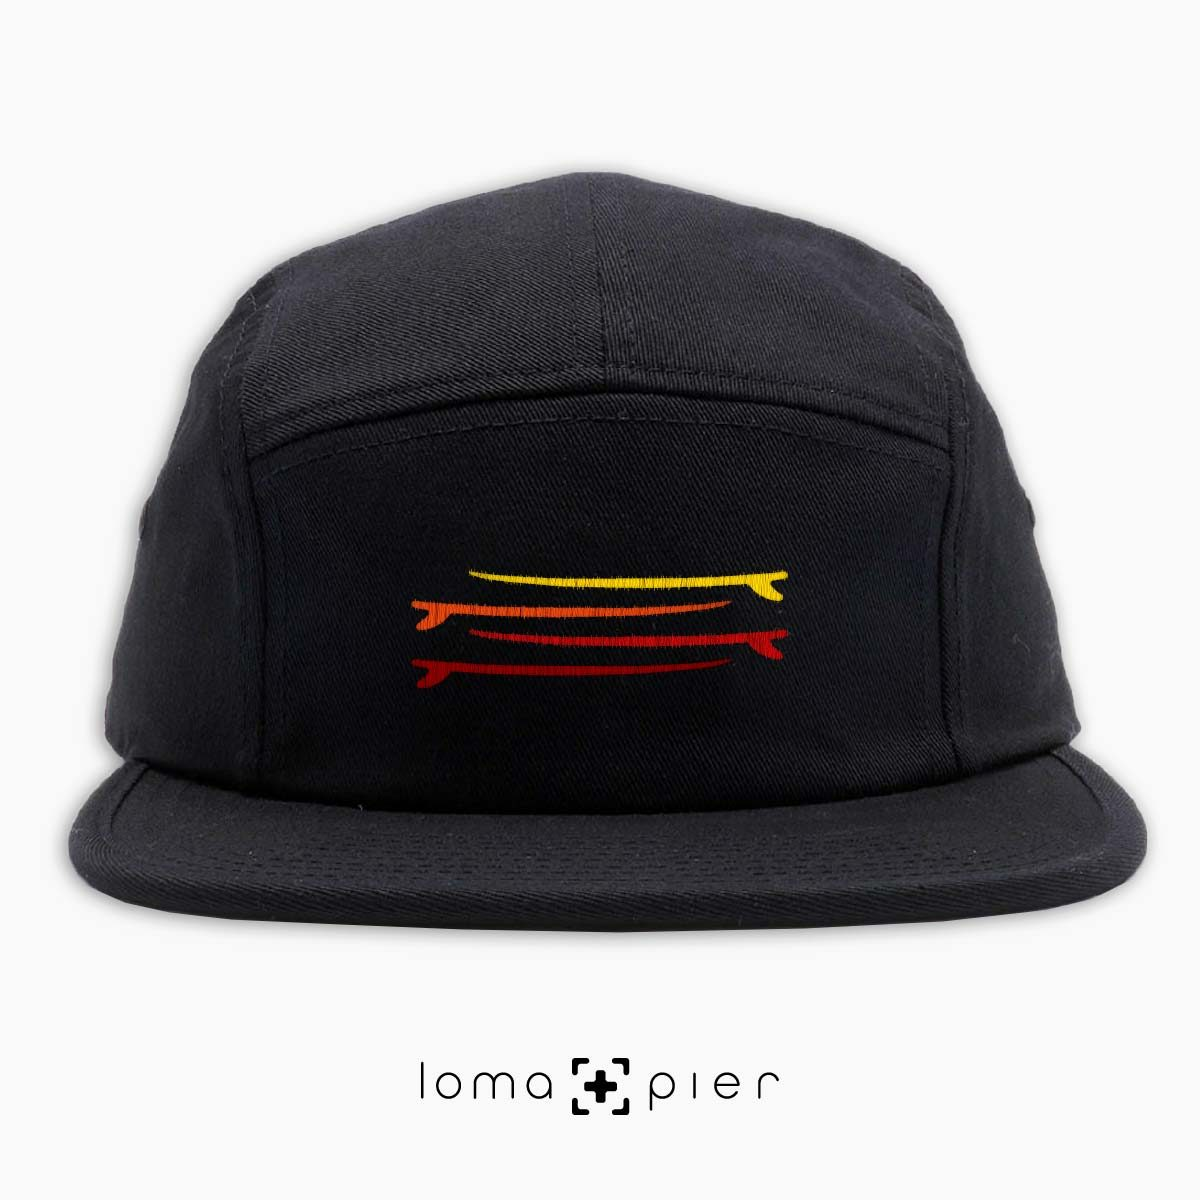 SURF STACK icon embroidered on a black cotton 5-panel hat by loma+pier hat store